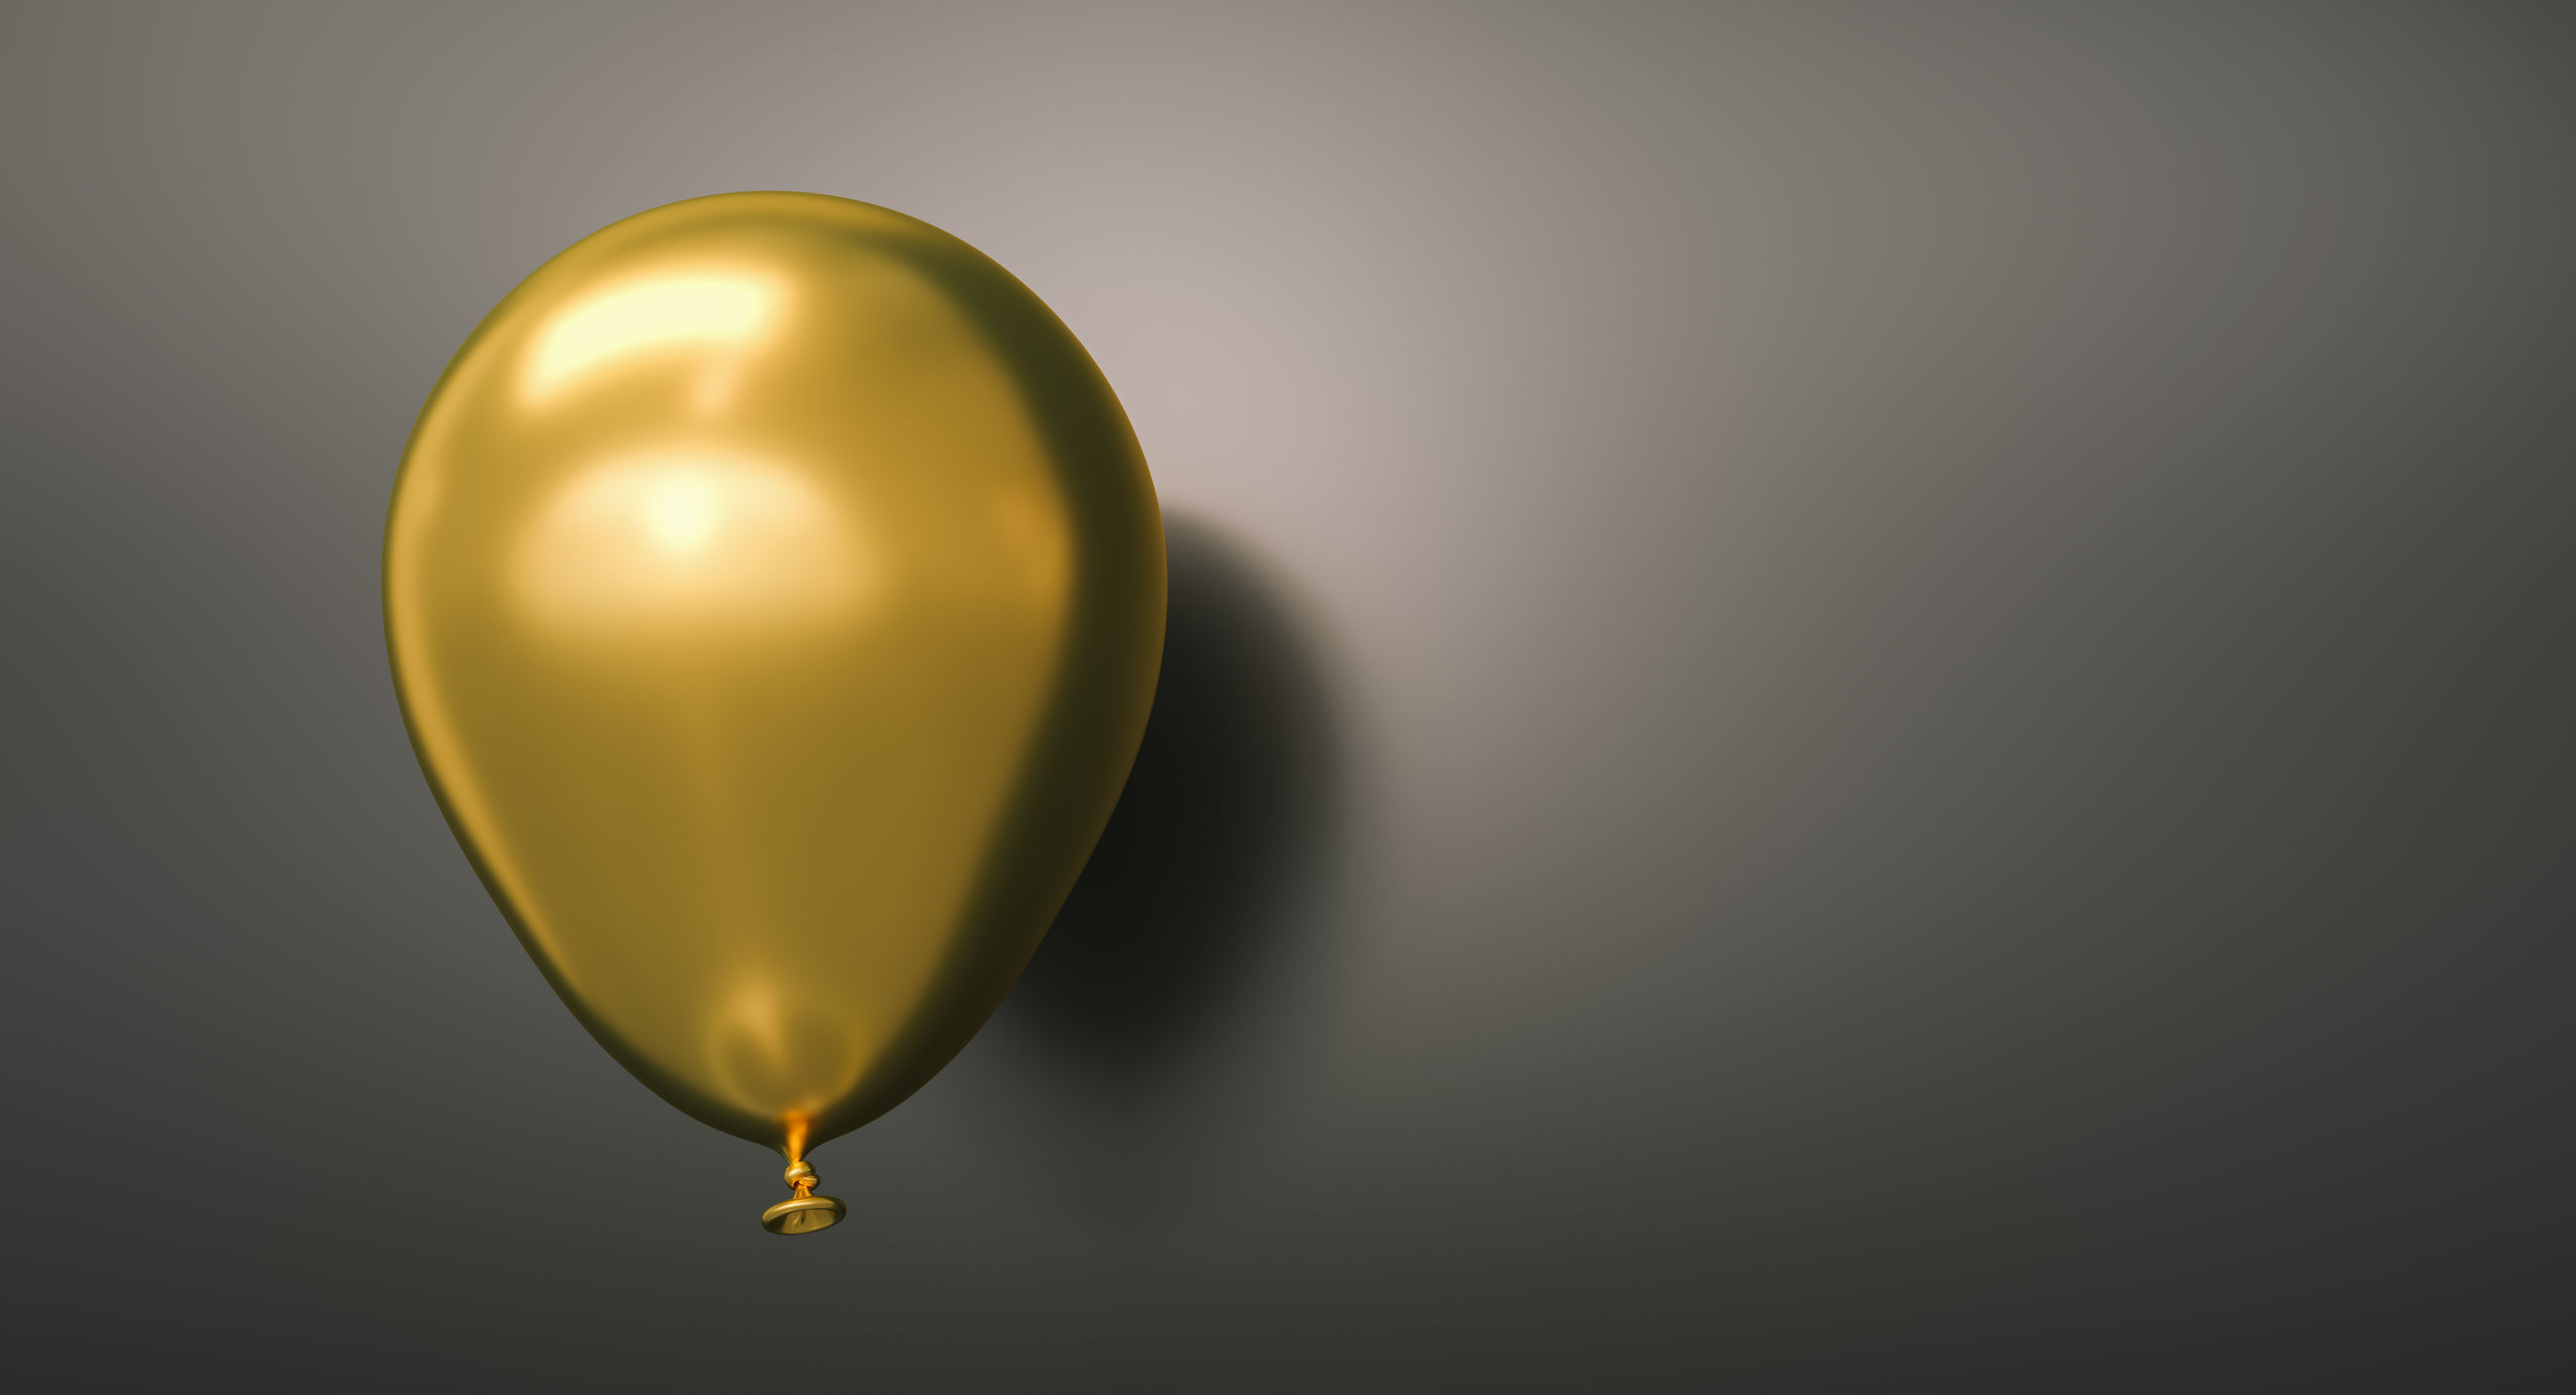 Close-up of balloon against gray background